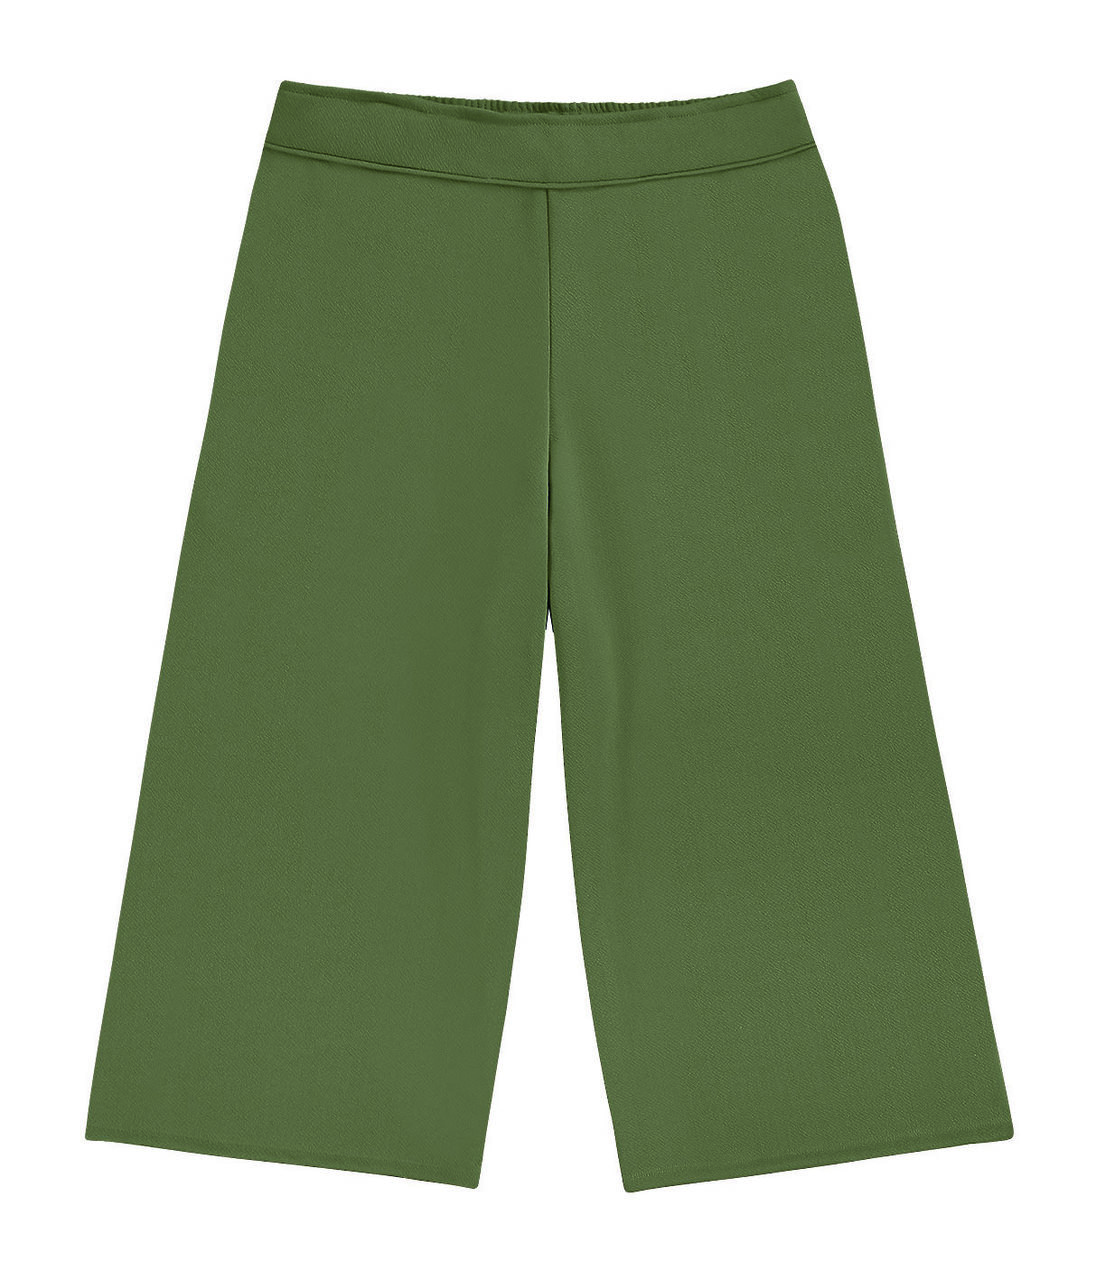 CALCA PLUS SIZE VERDE